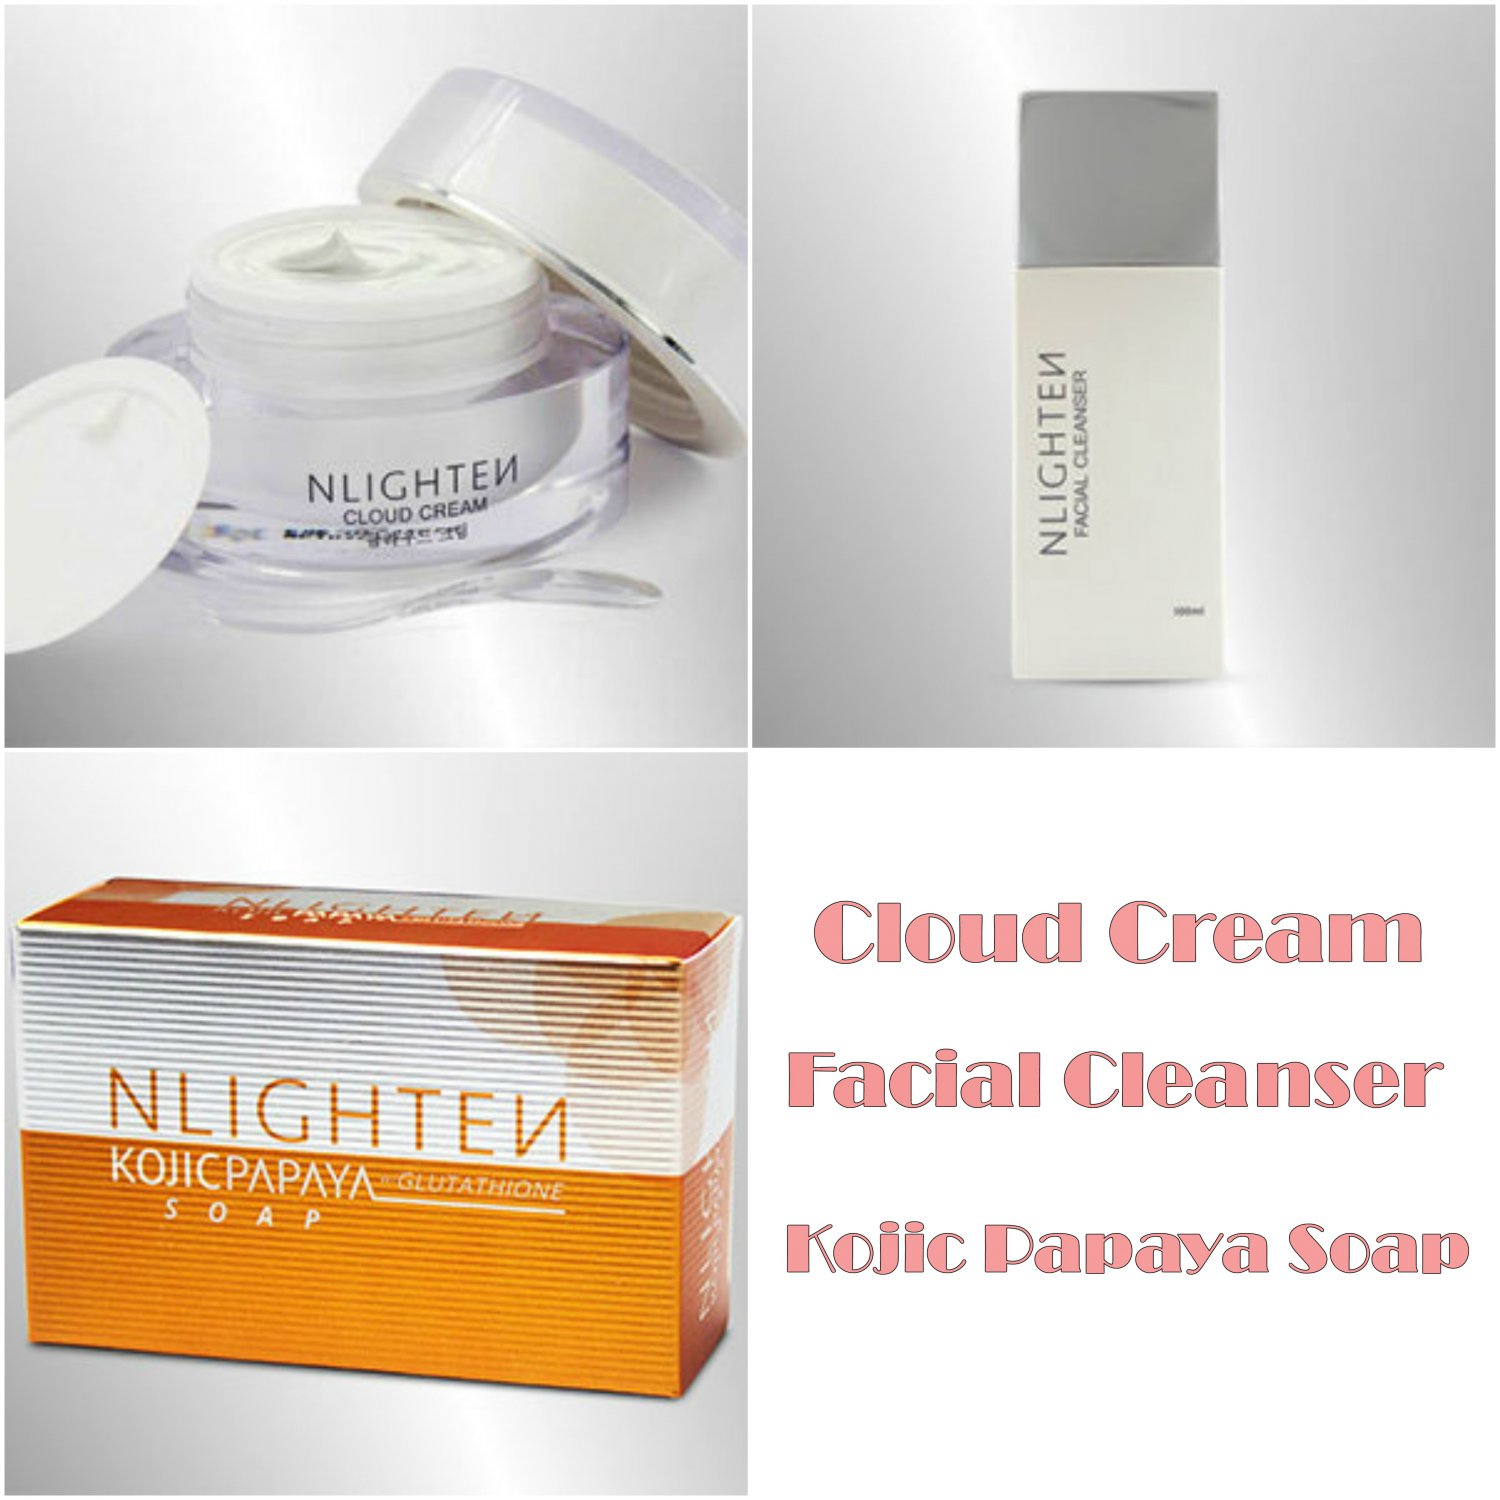 Nlighten Cloud Cream, Facial Cleanser and Kojic Papaya with Glutathione